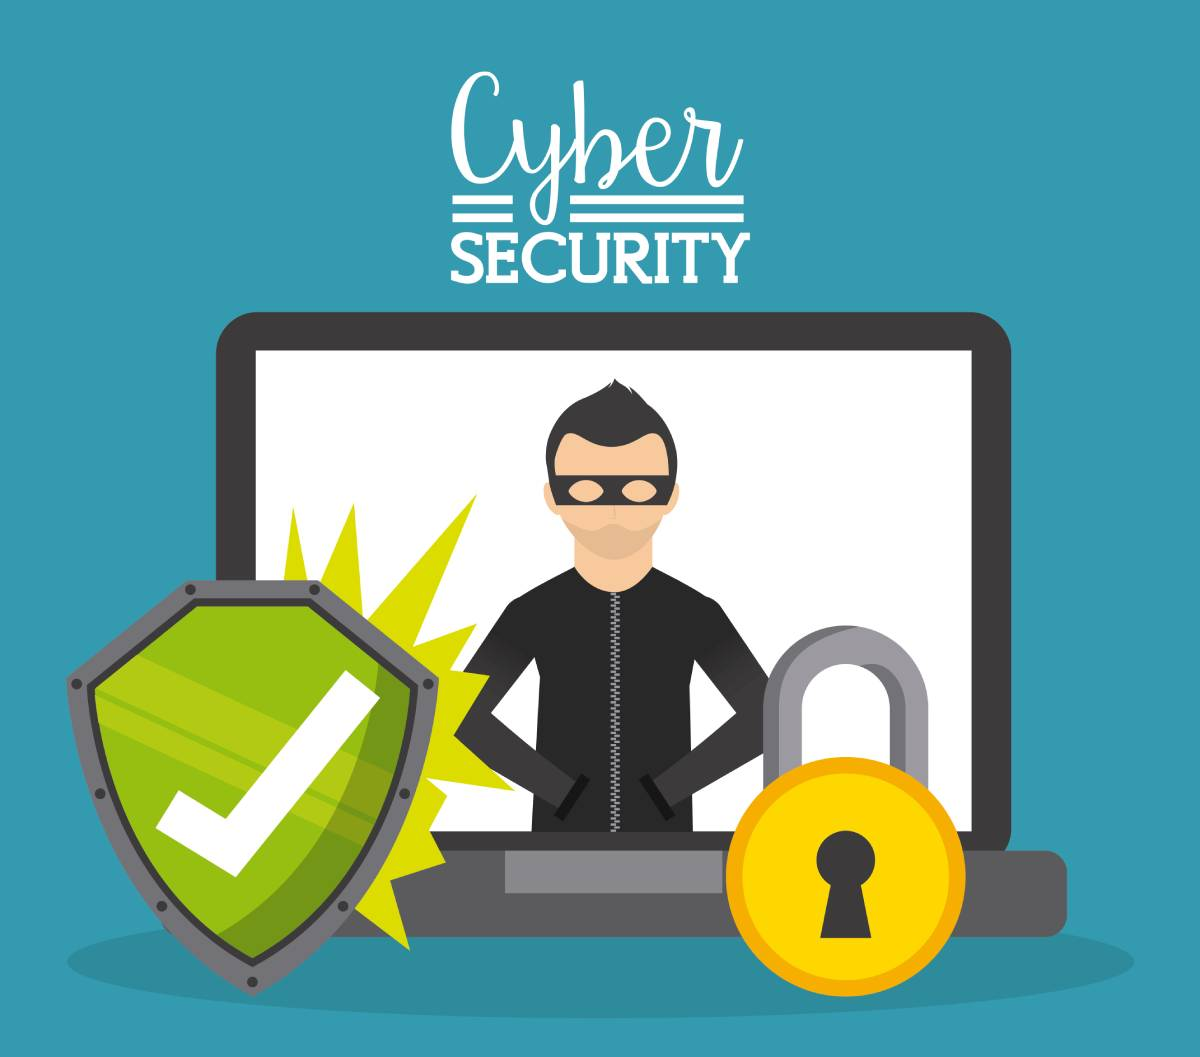 A graphic with a man in a mask on a laptop with a green shield & padlock in front of it, with cyber security written at the top